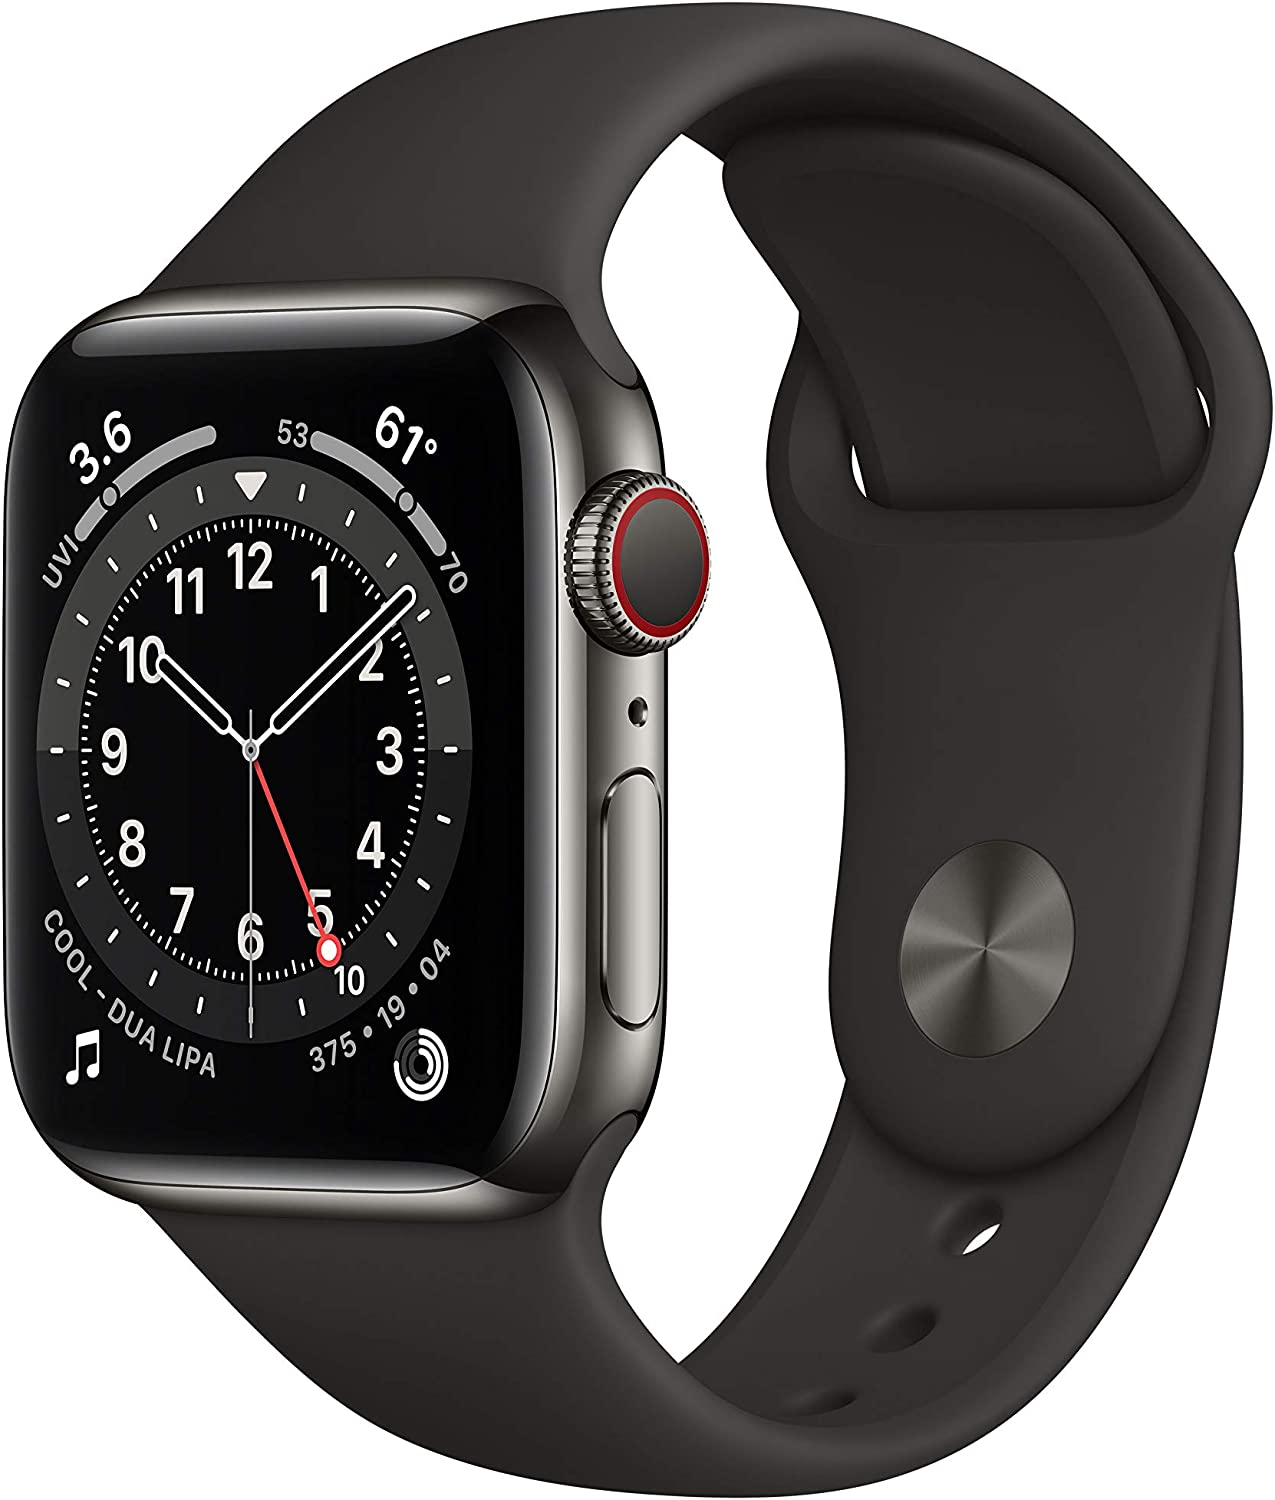 El Apple Watch Series 3